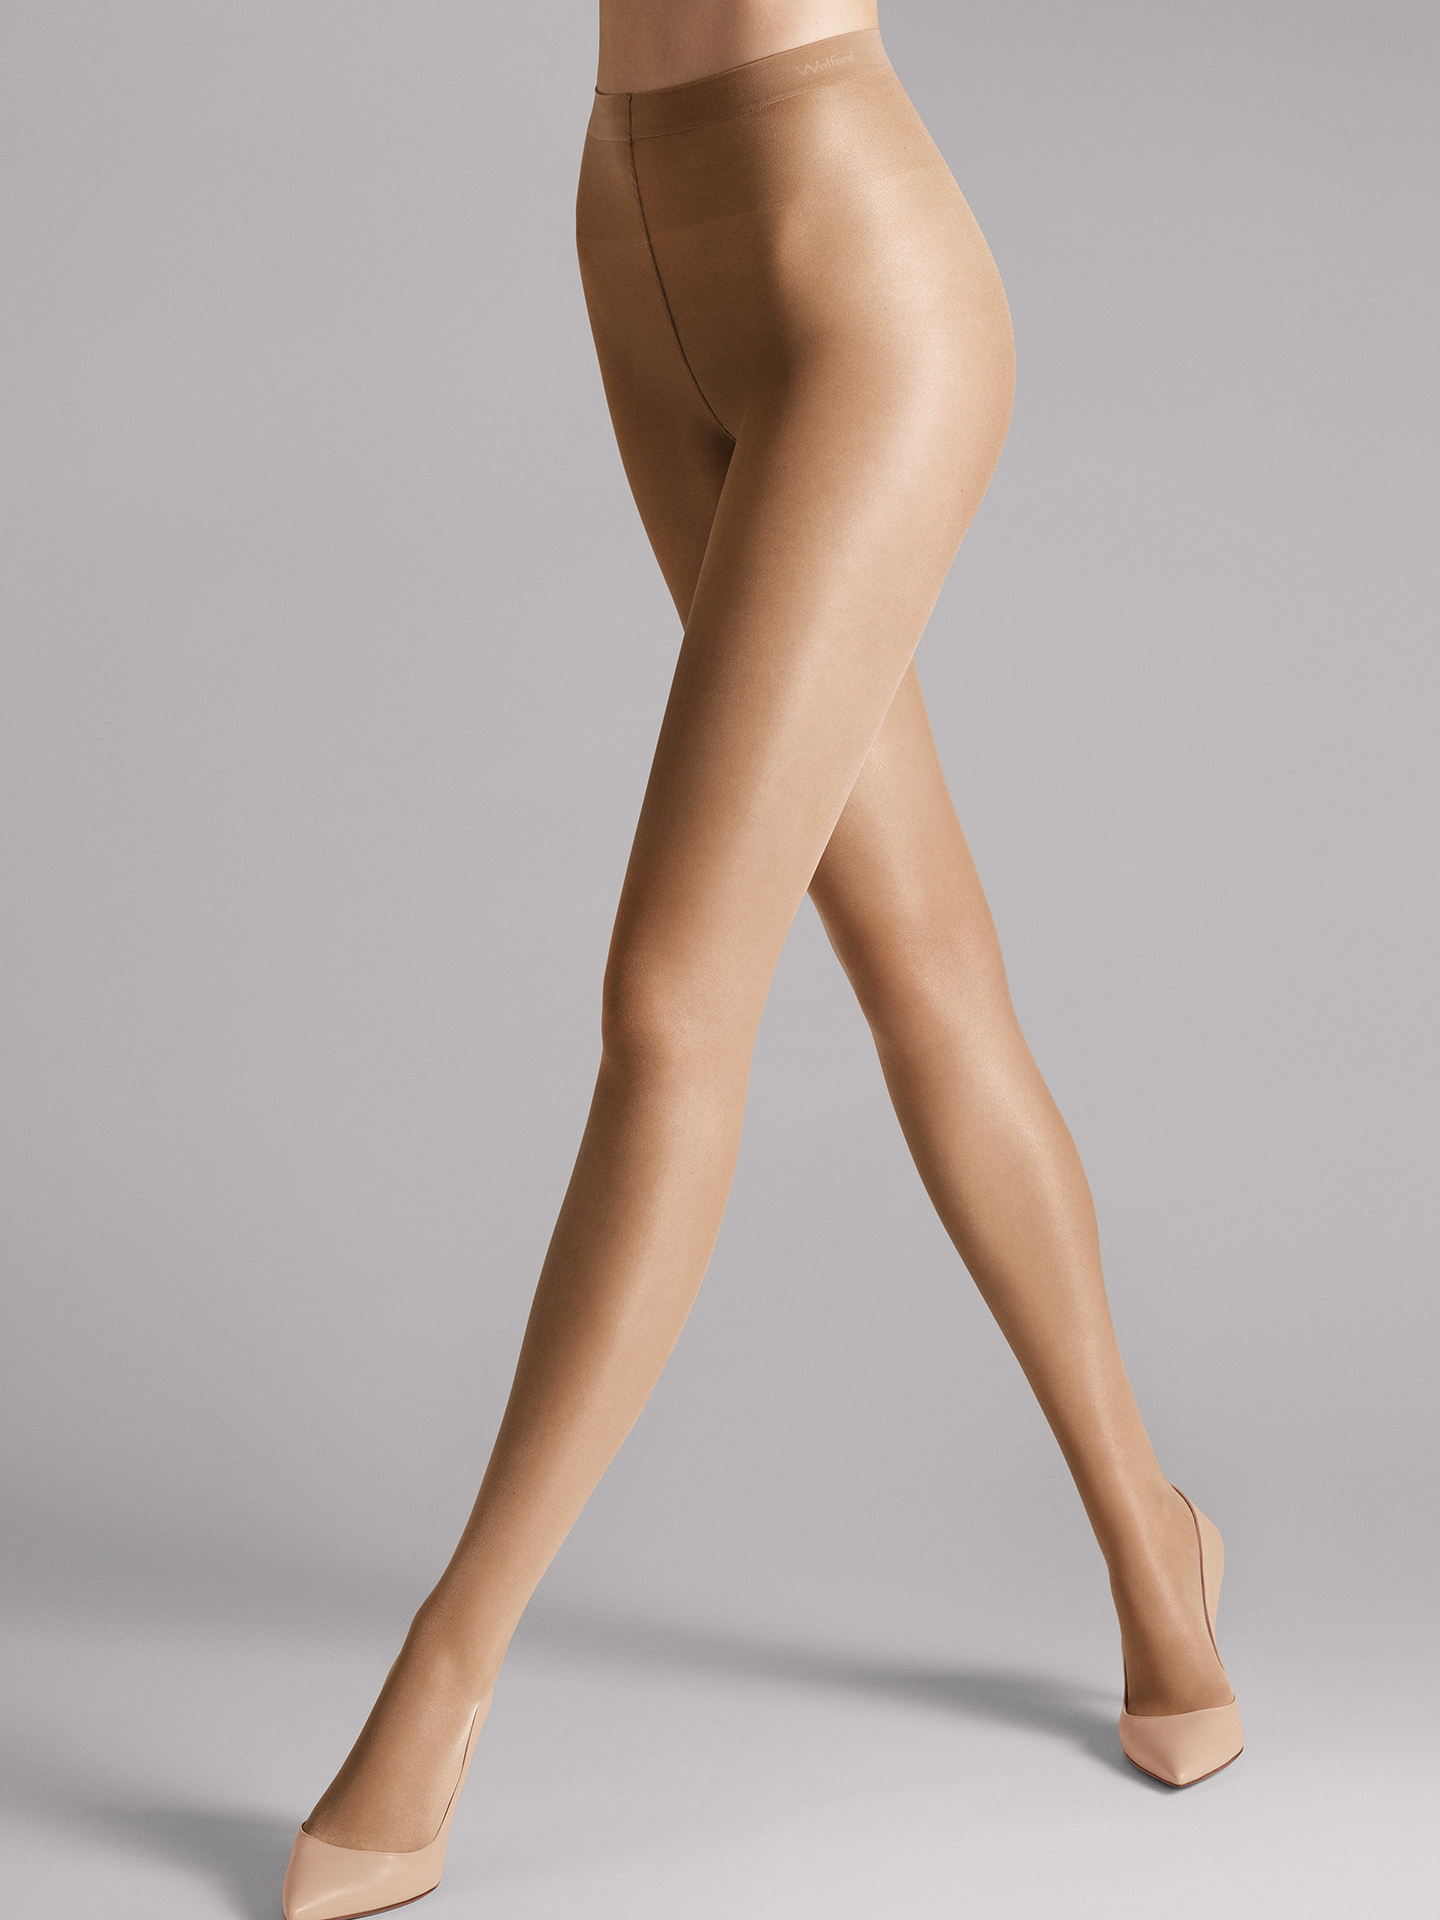 Wolford Apparel & Accessories > Clothing > Collant Satin Touch 20 - 4004 - M